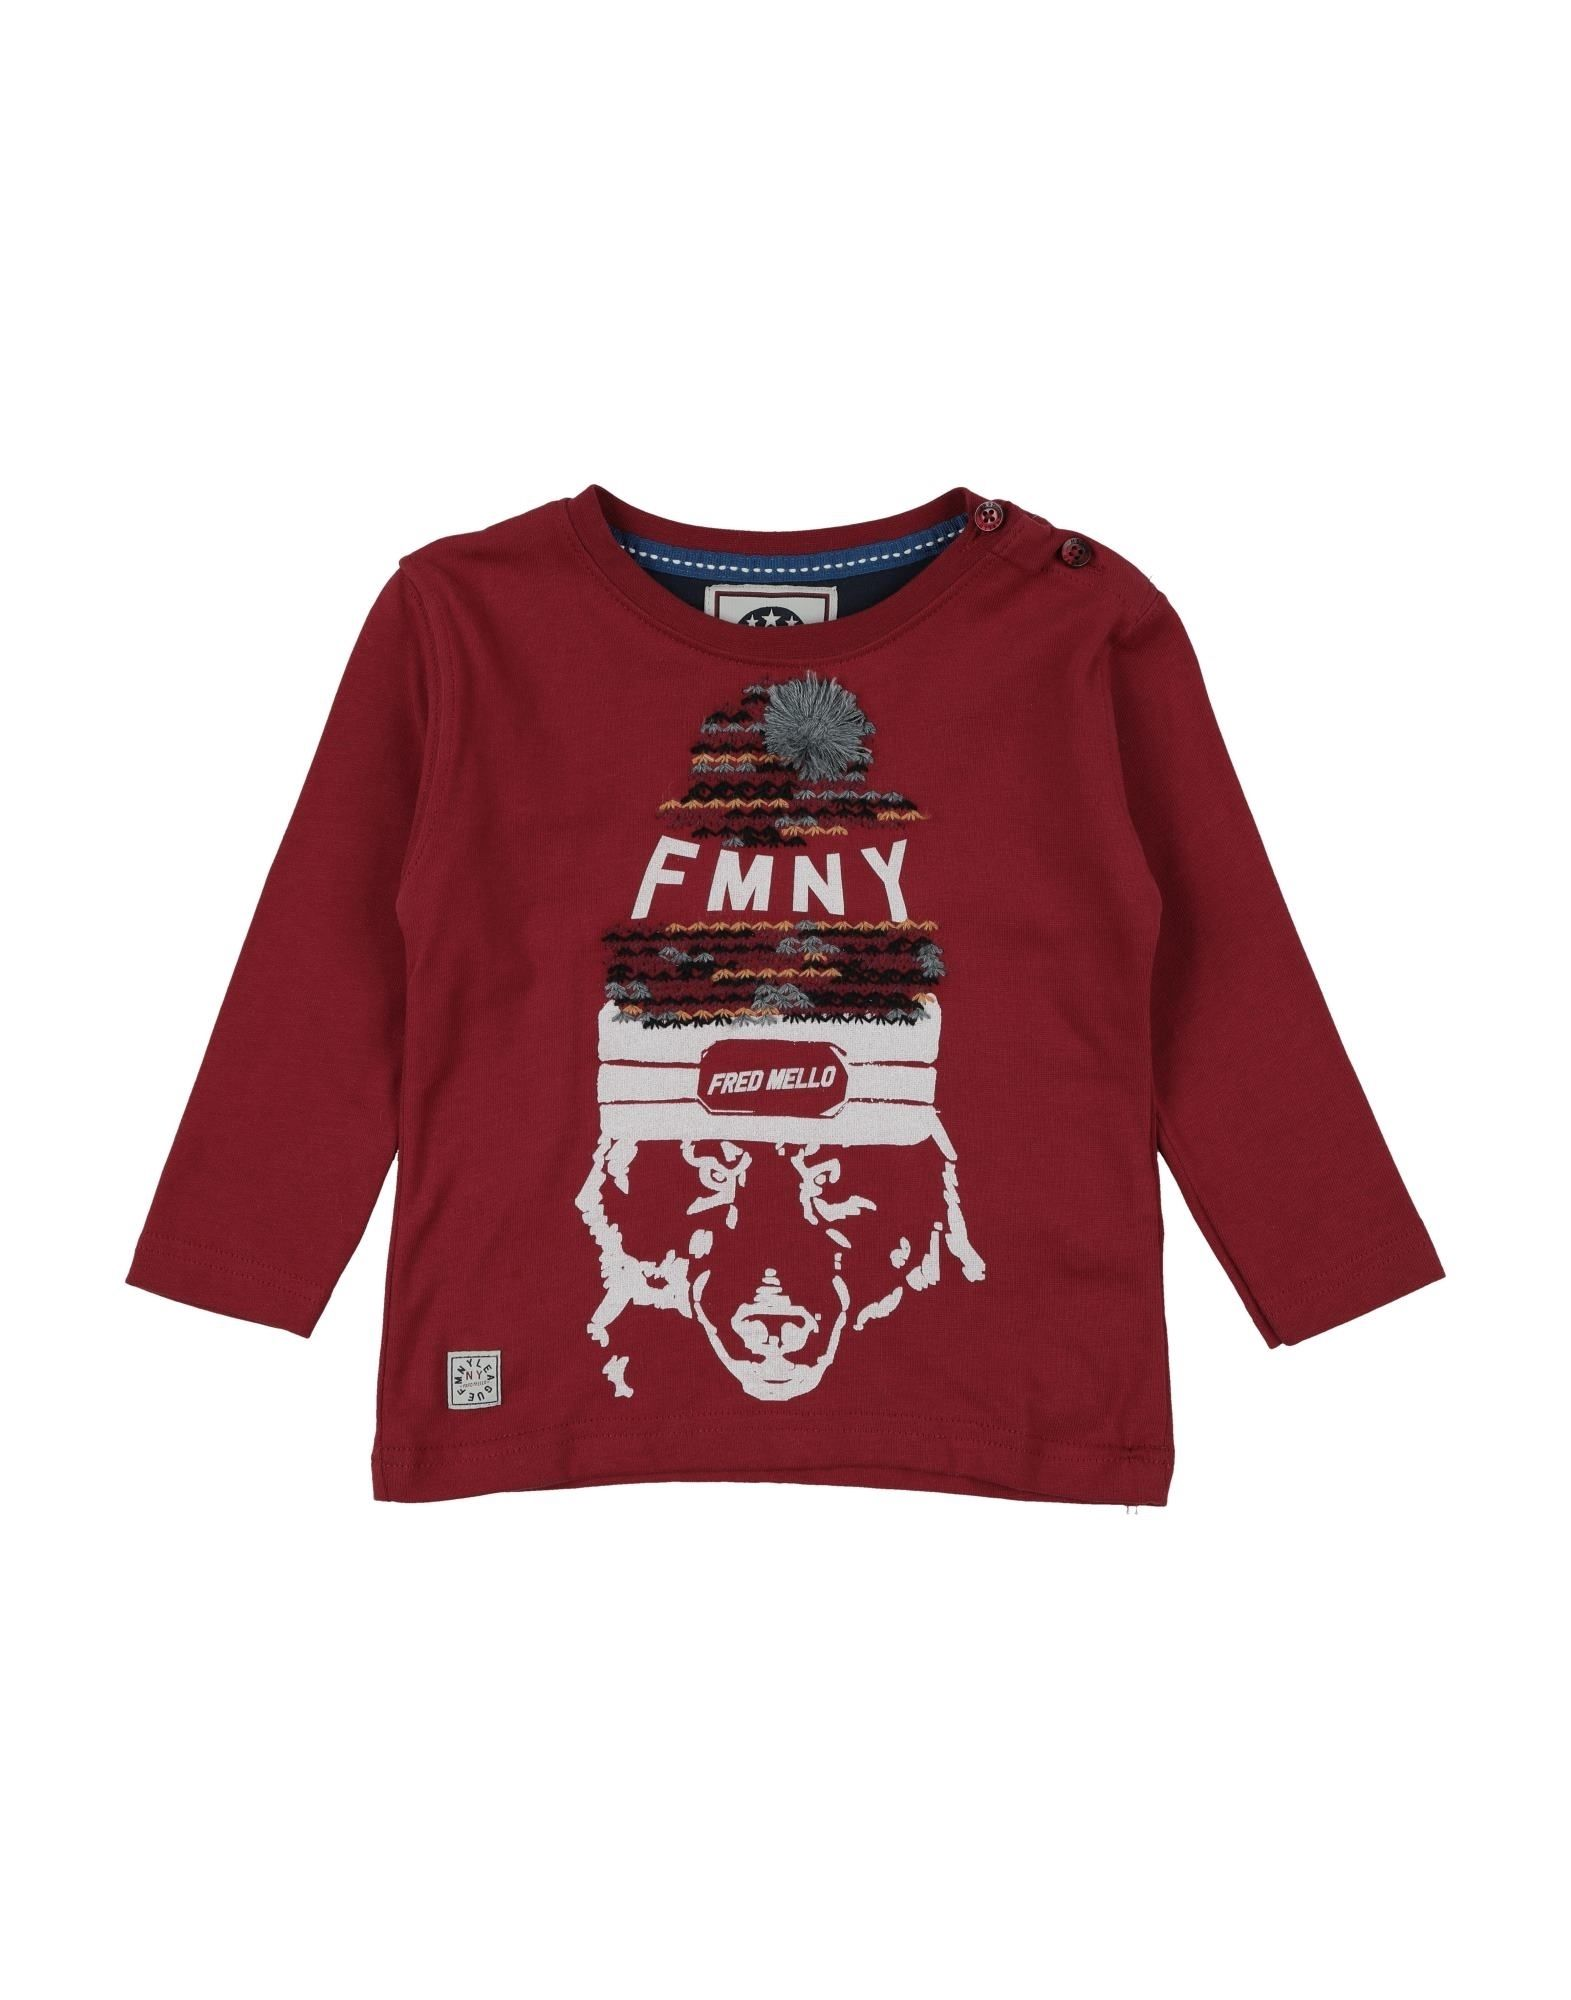 Fred Mello Kids' T-shirts In Red